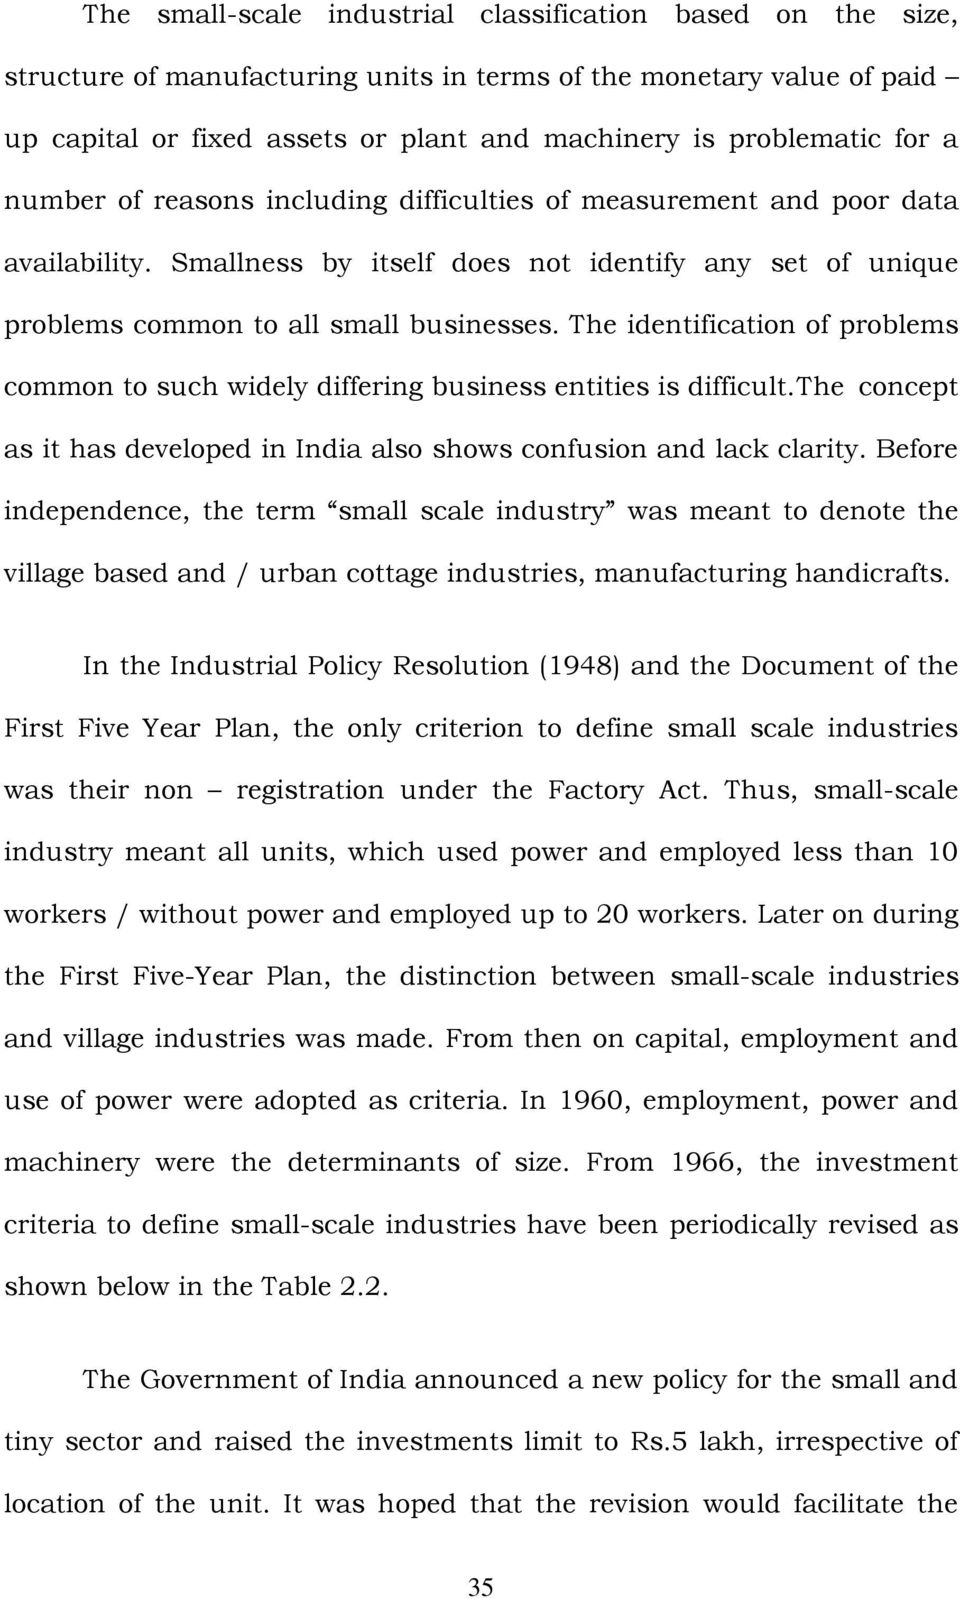 industries in india before independence